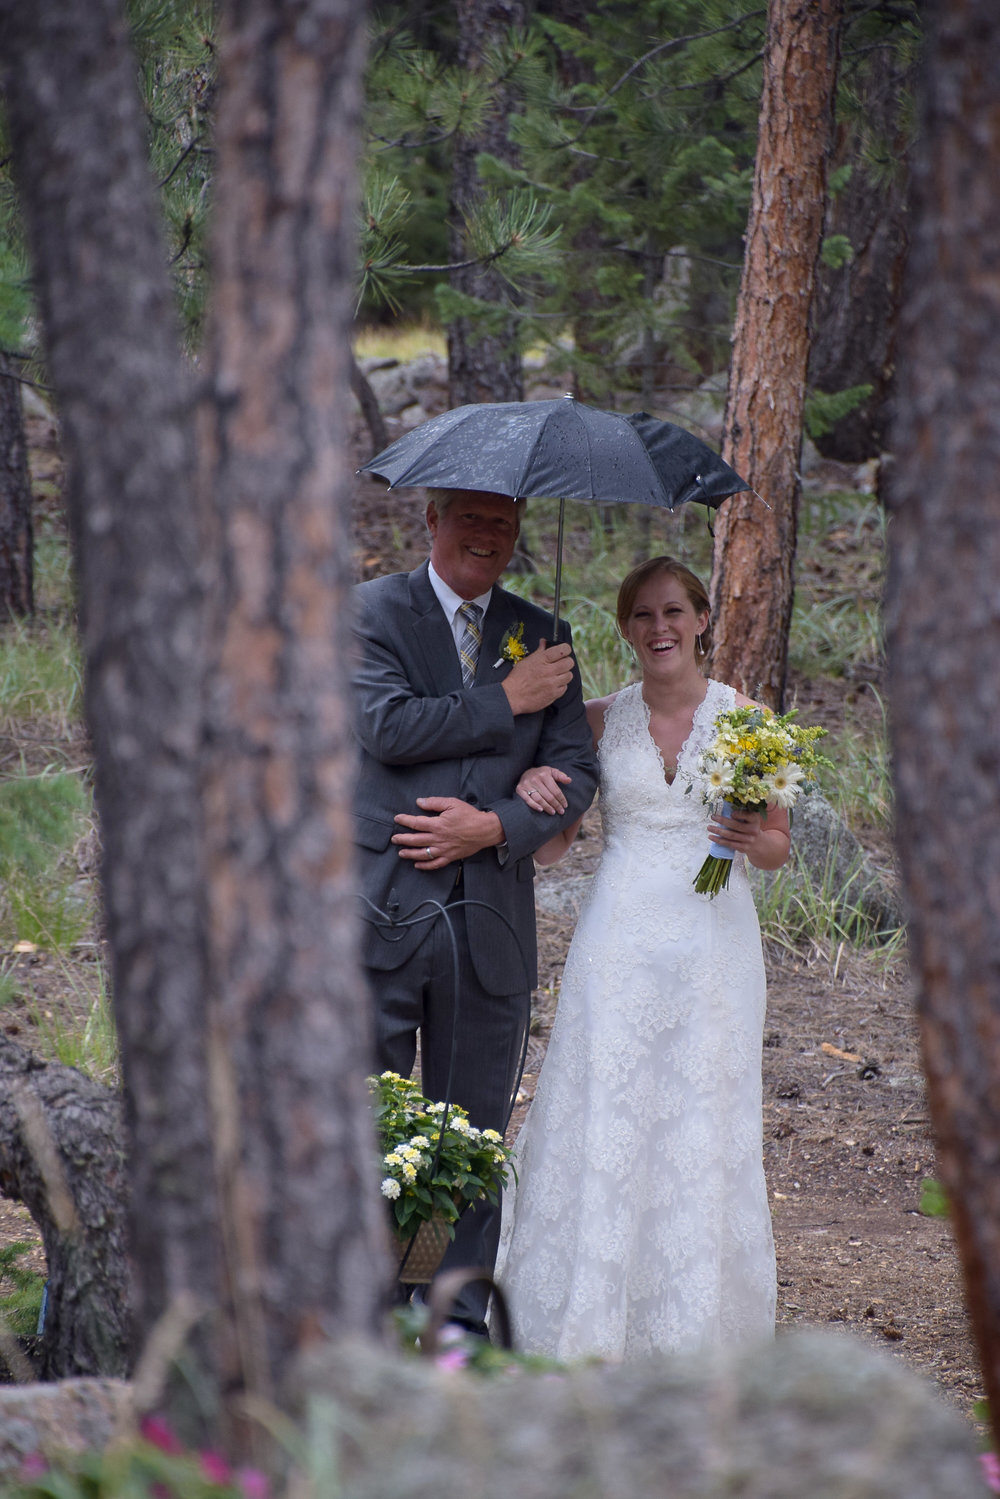 Dad walking bride to altar with umbrella.